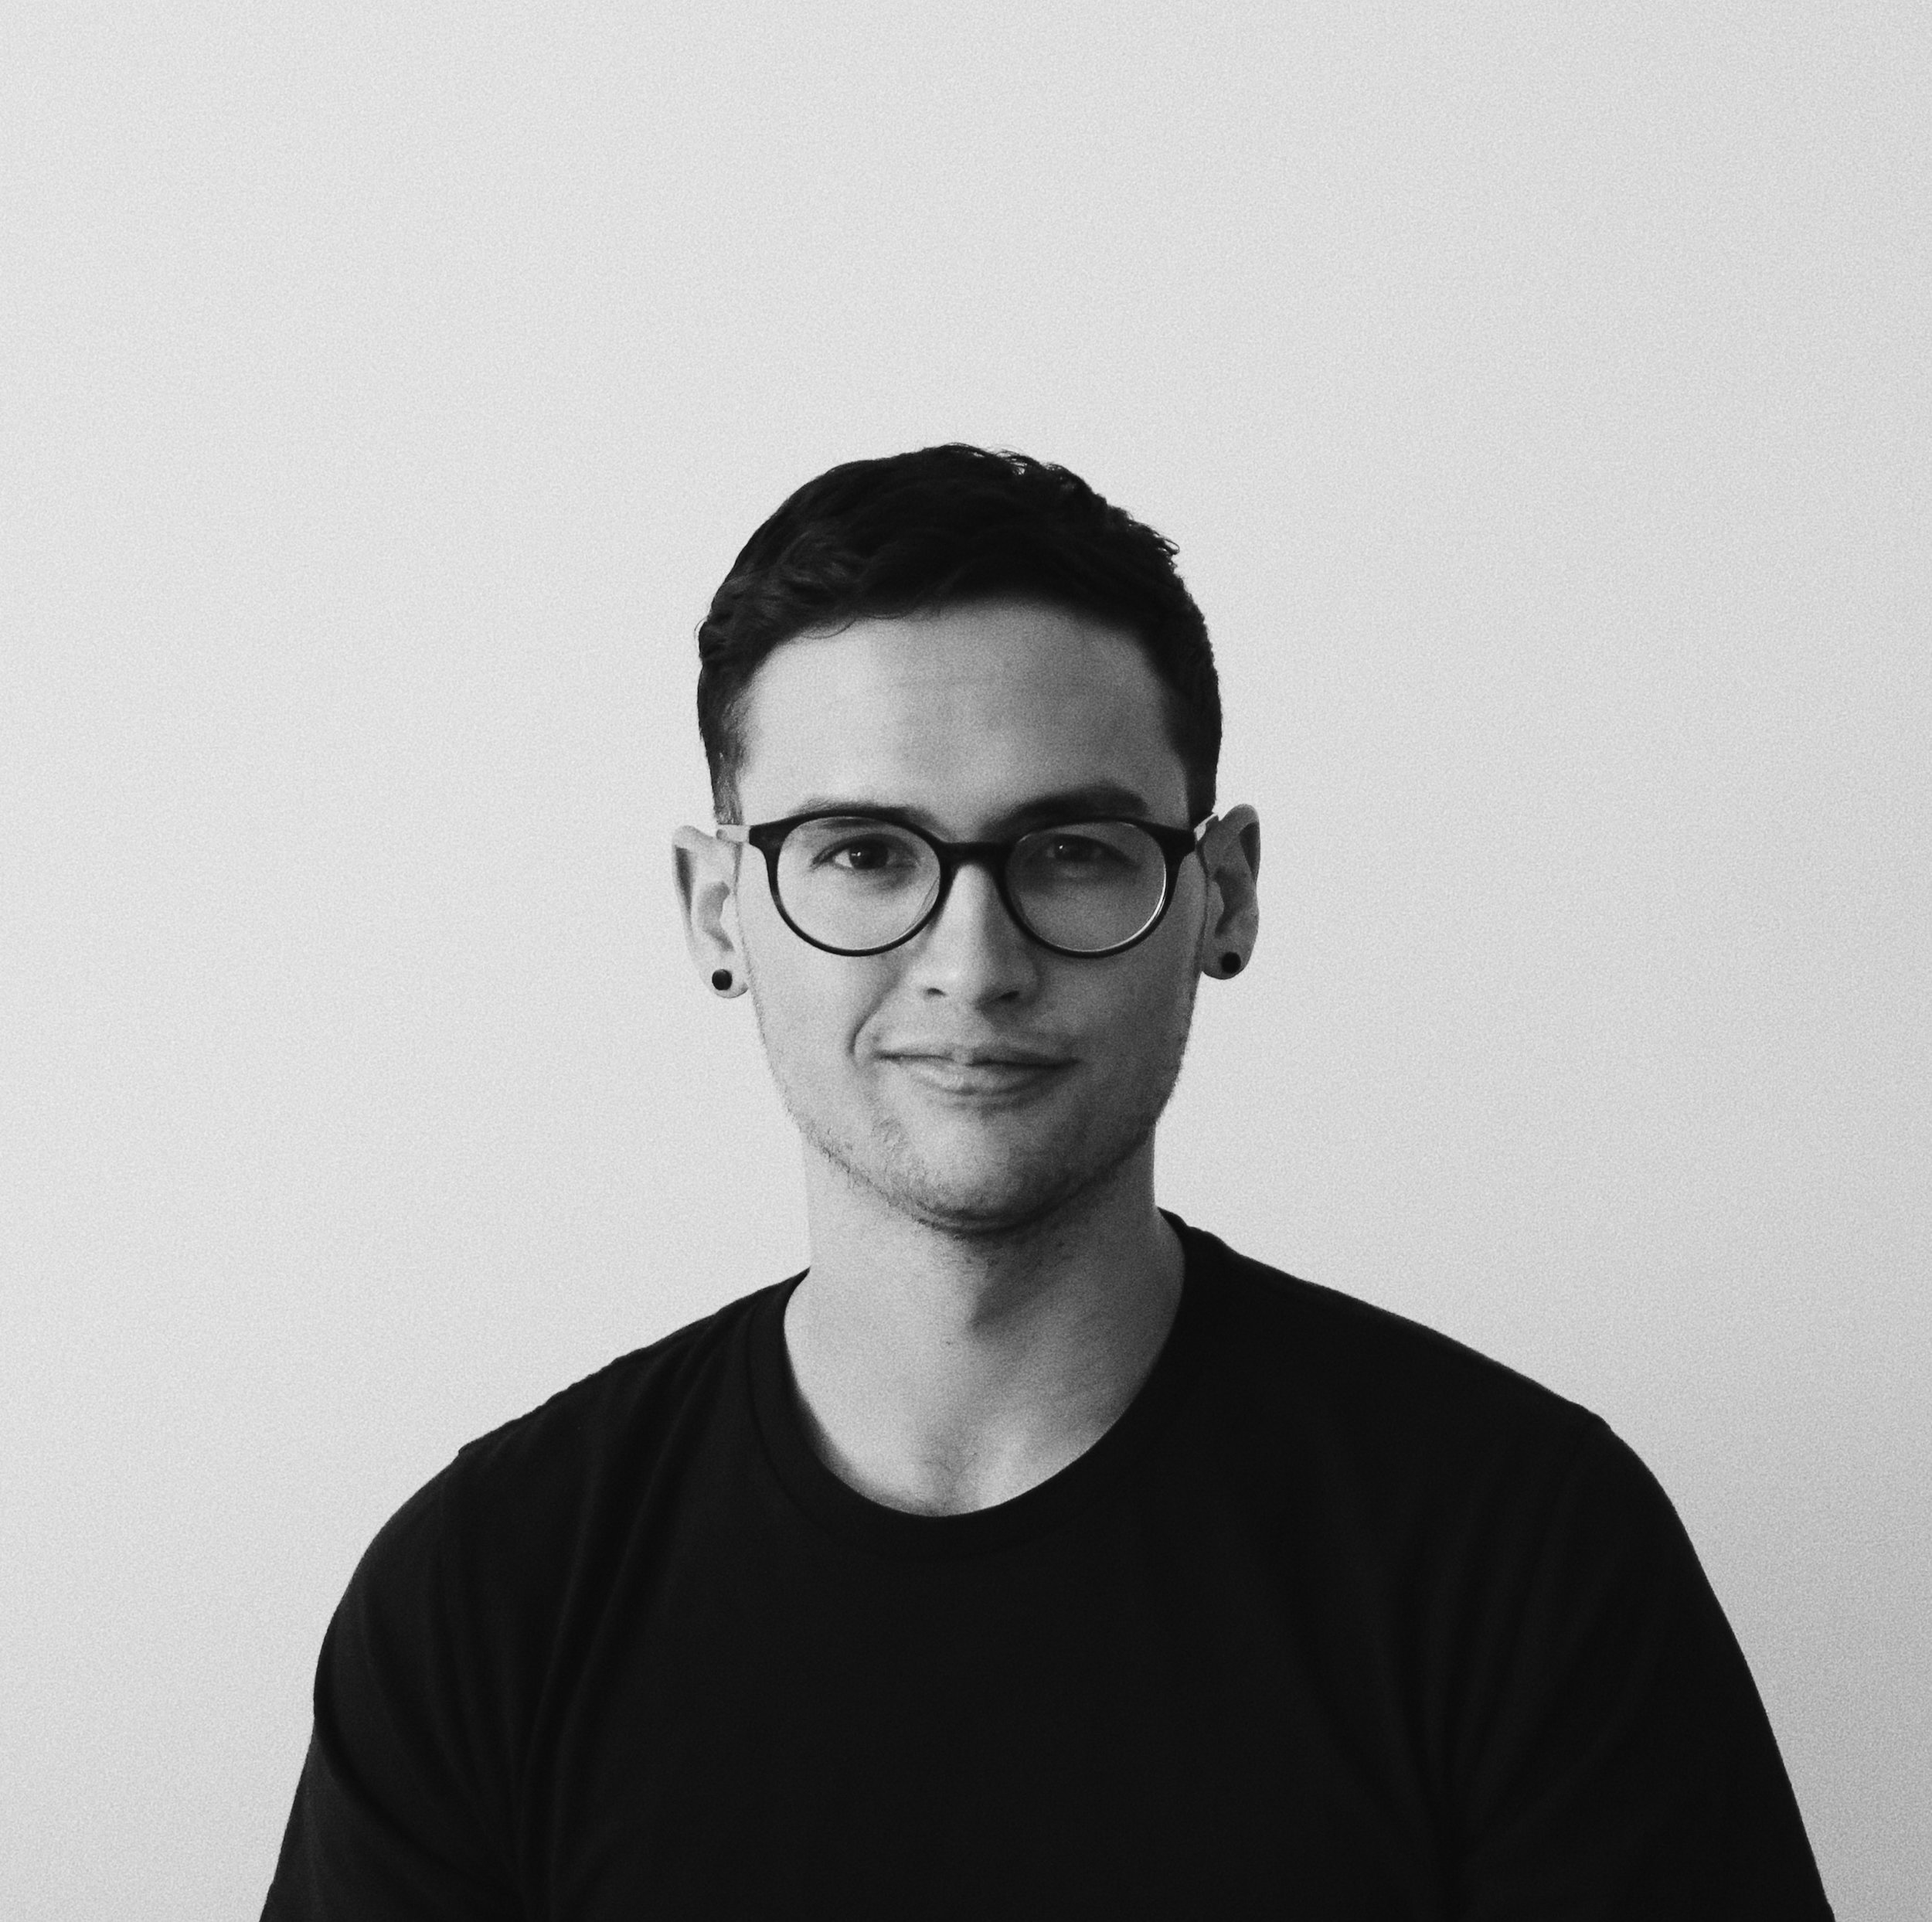 Hi, I'm Austin. - I'm a visual designer & illustrator in Chicago. Besides design, I'm really into Internet culture, drag queens, french fries and literally nothing else.